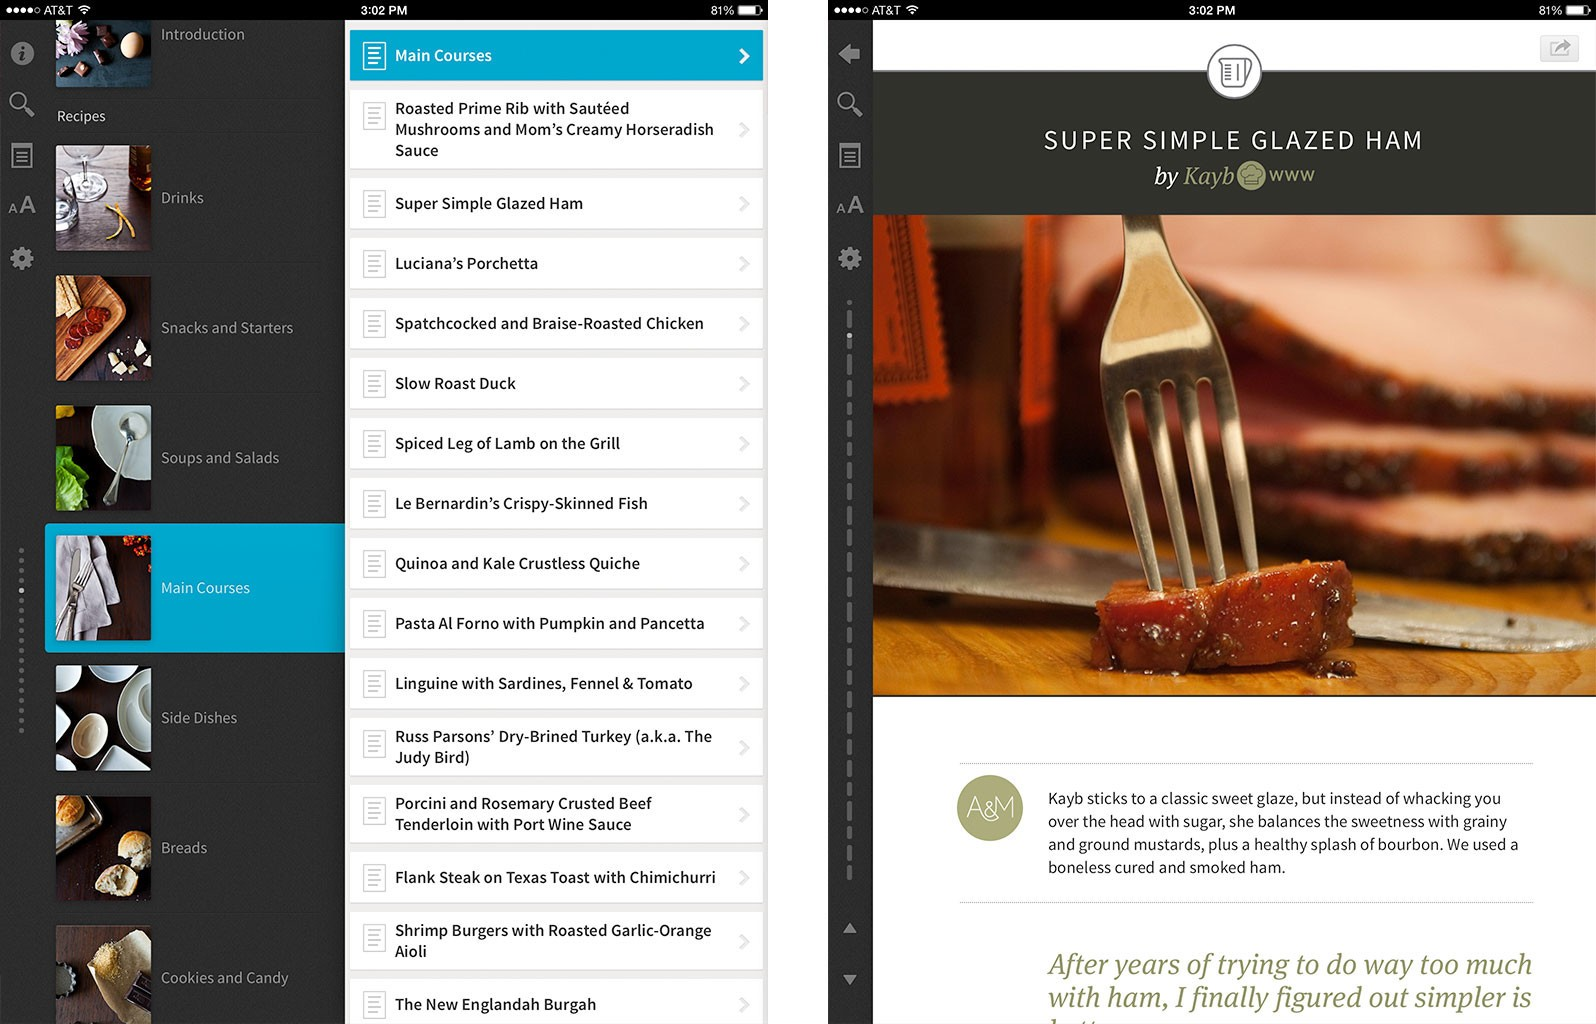 Best recipe and cooking apps for ipad zest evernote food food52 best recipe and cooking apps for ipad food52 forumfinder Image collections